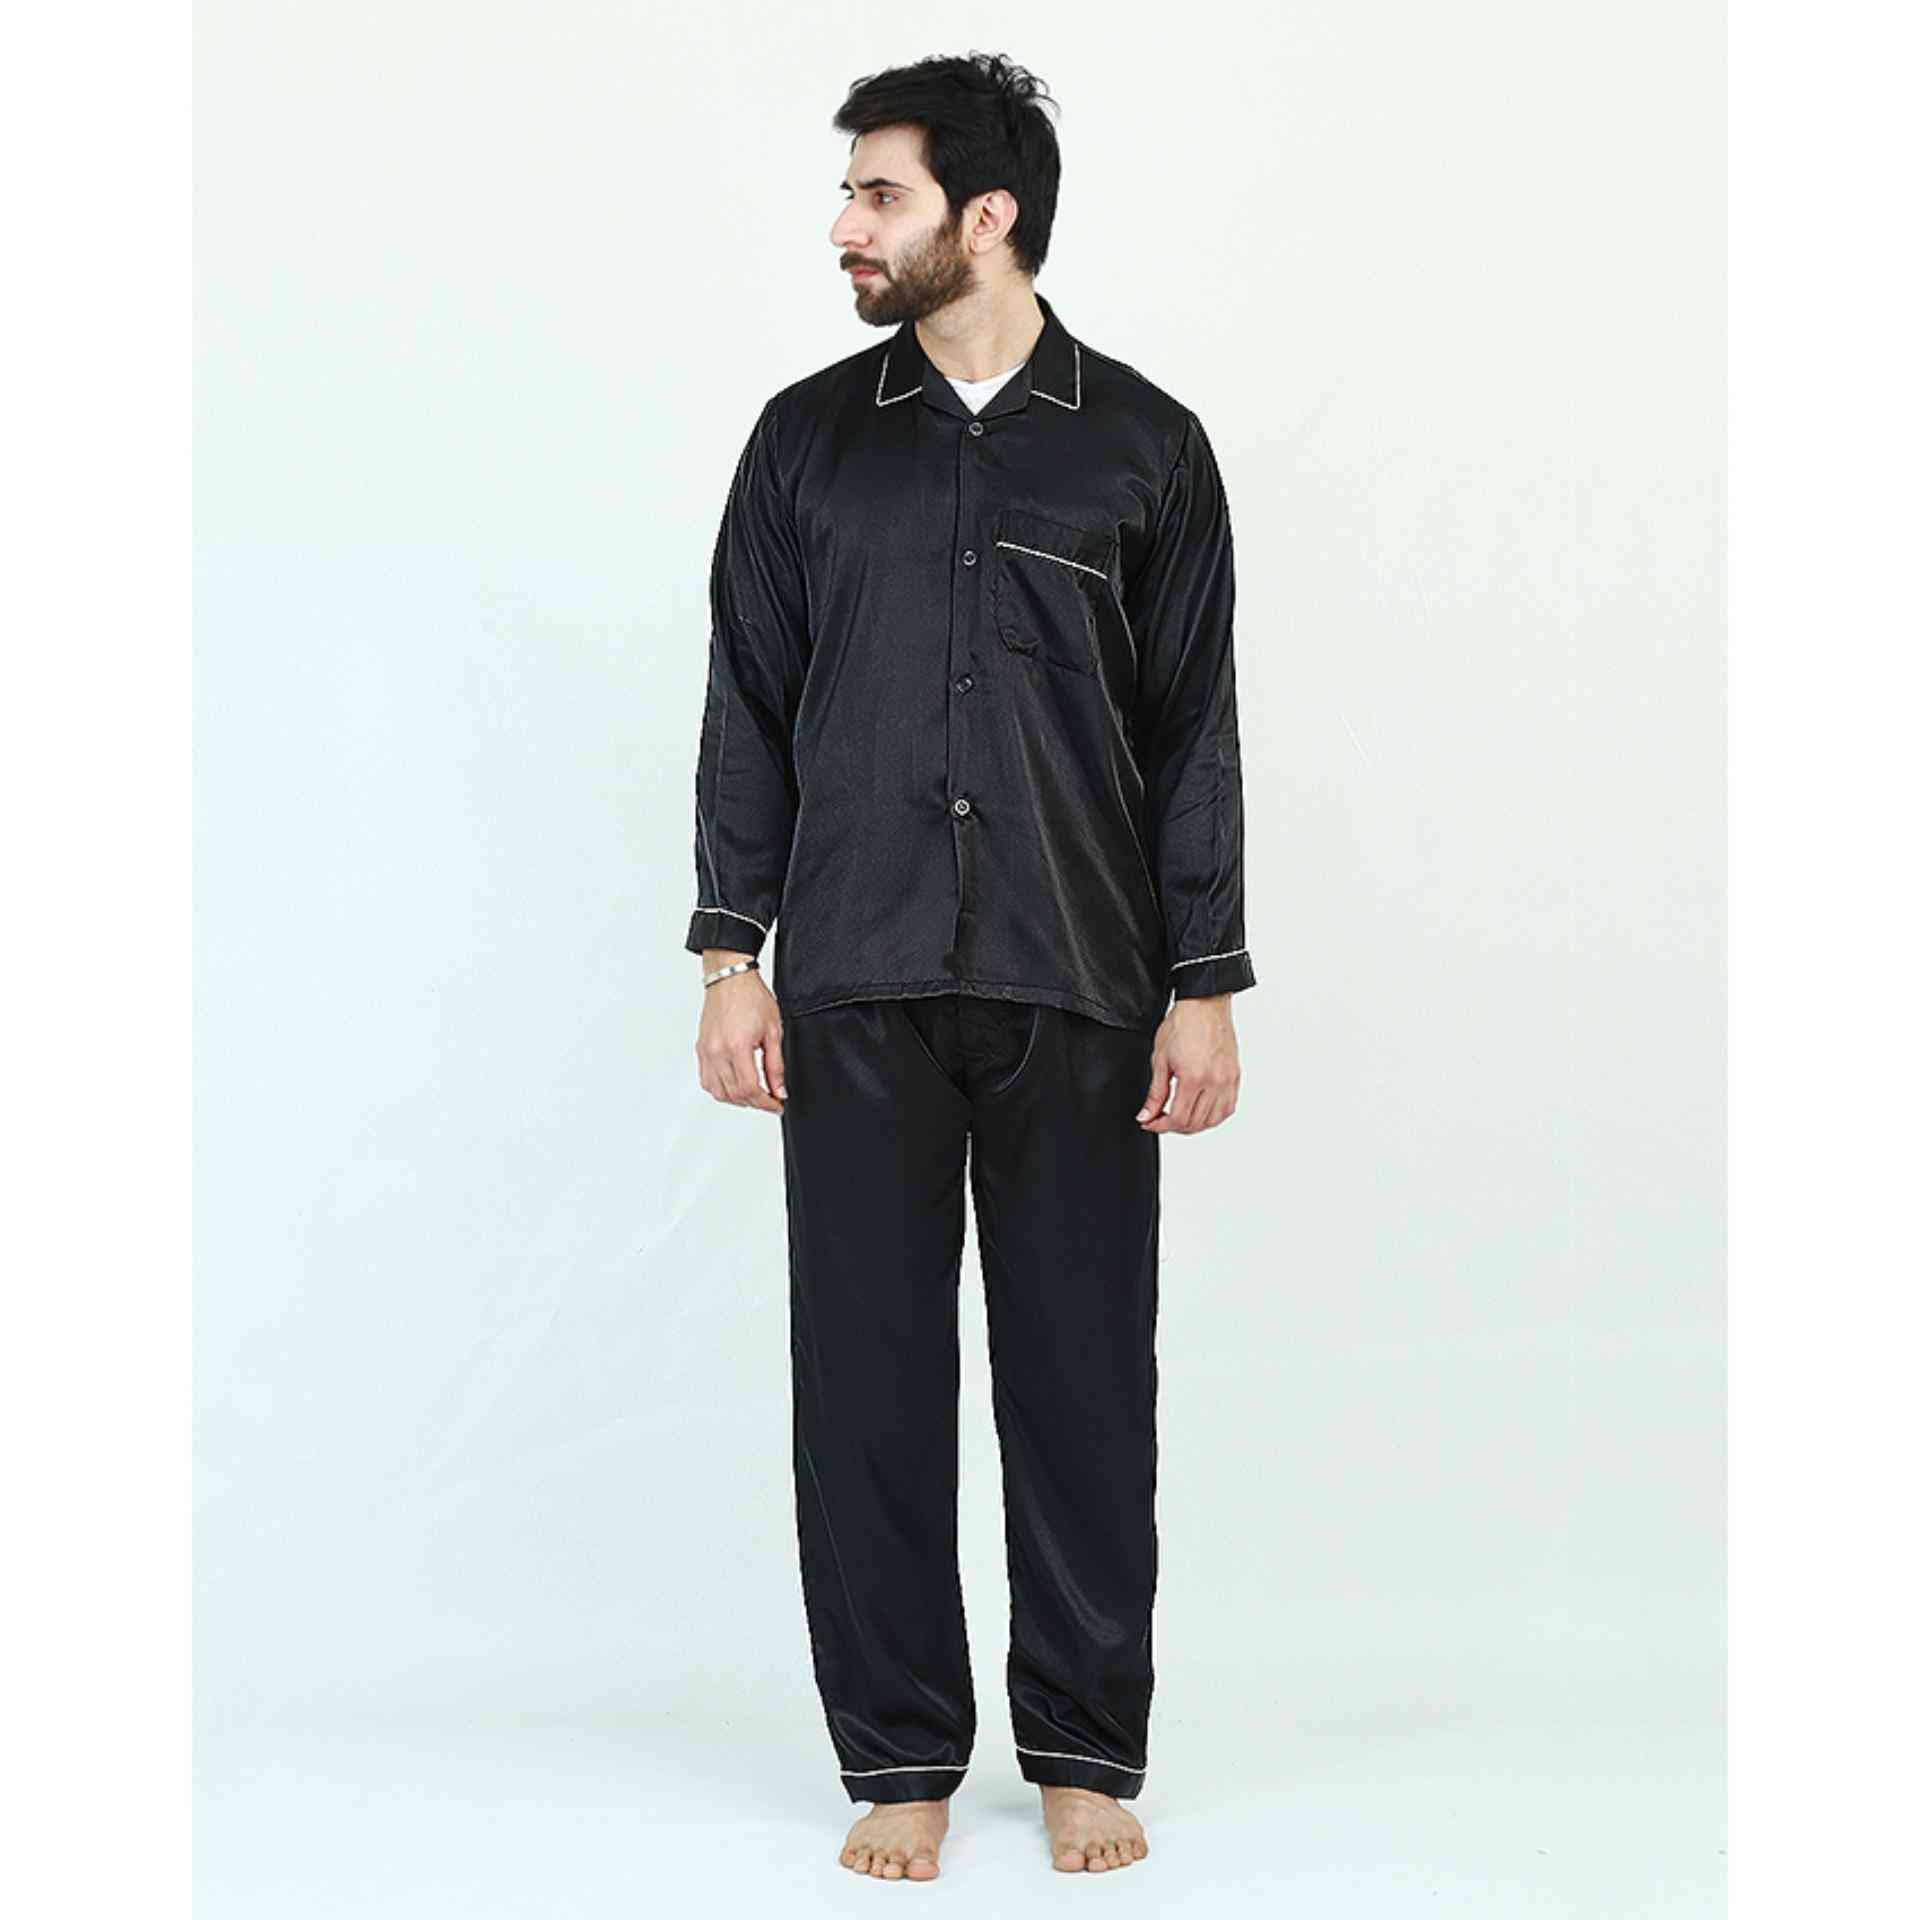 Pack of 2 Satin Silk Night Suit (Pajama + Shirt) for Men - Black